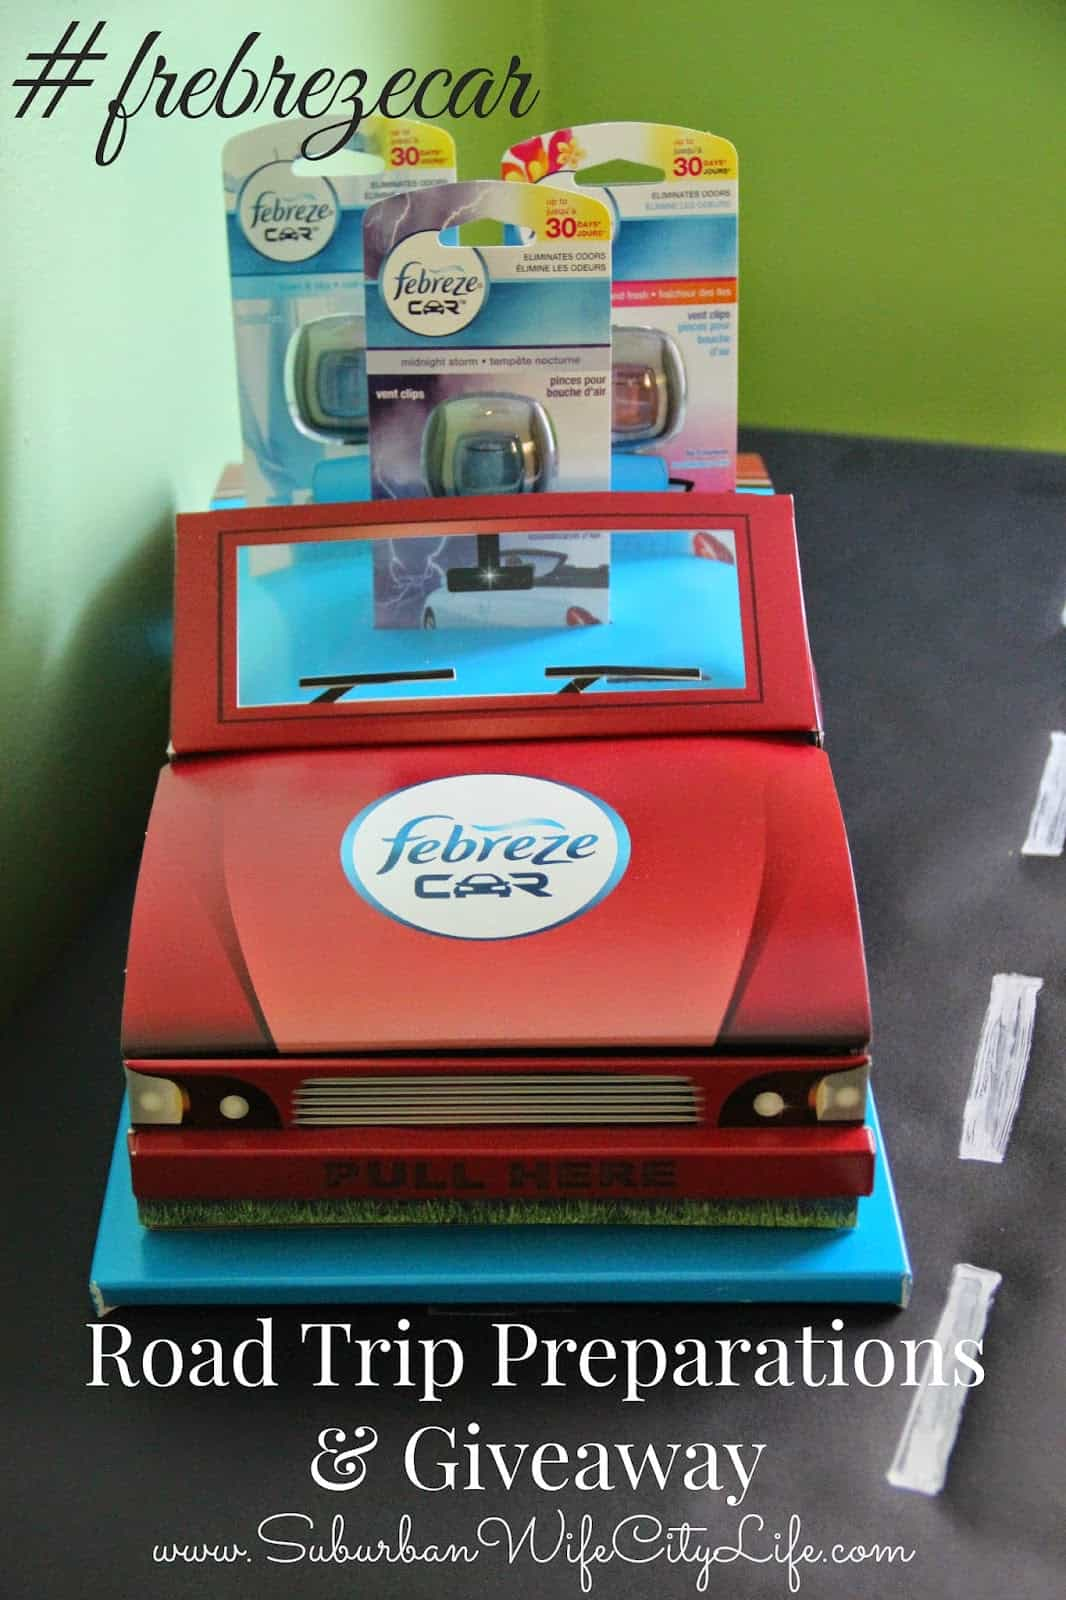 Febreze Car Road Trip Preparations & Giveaway